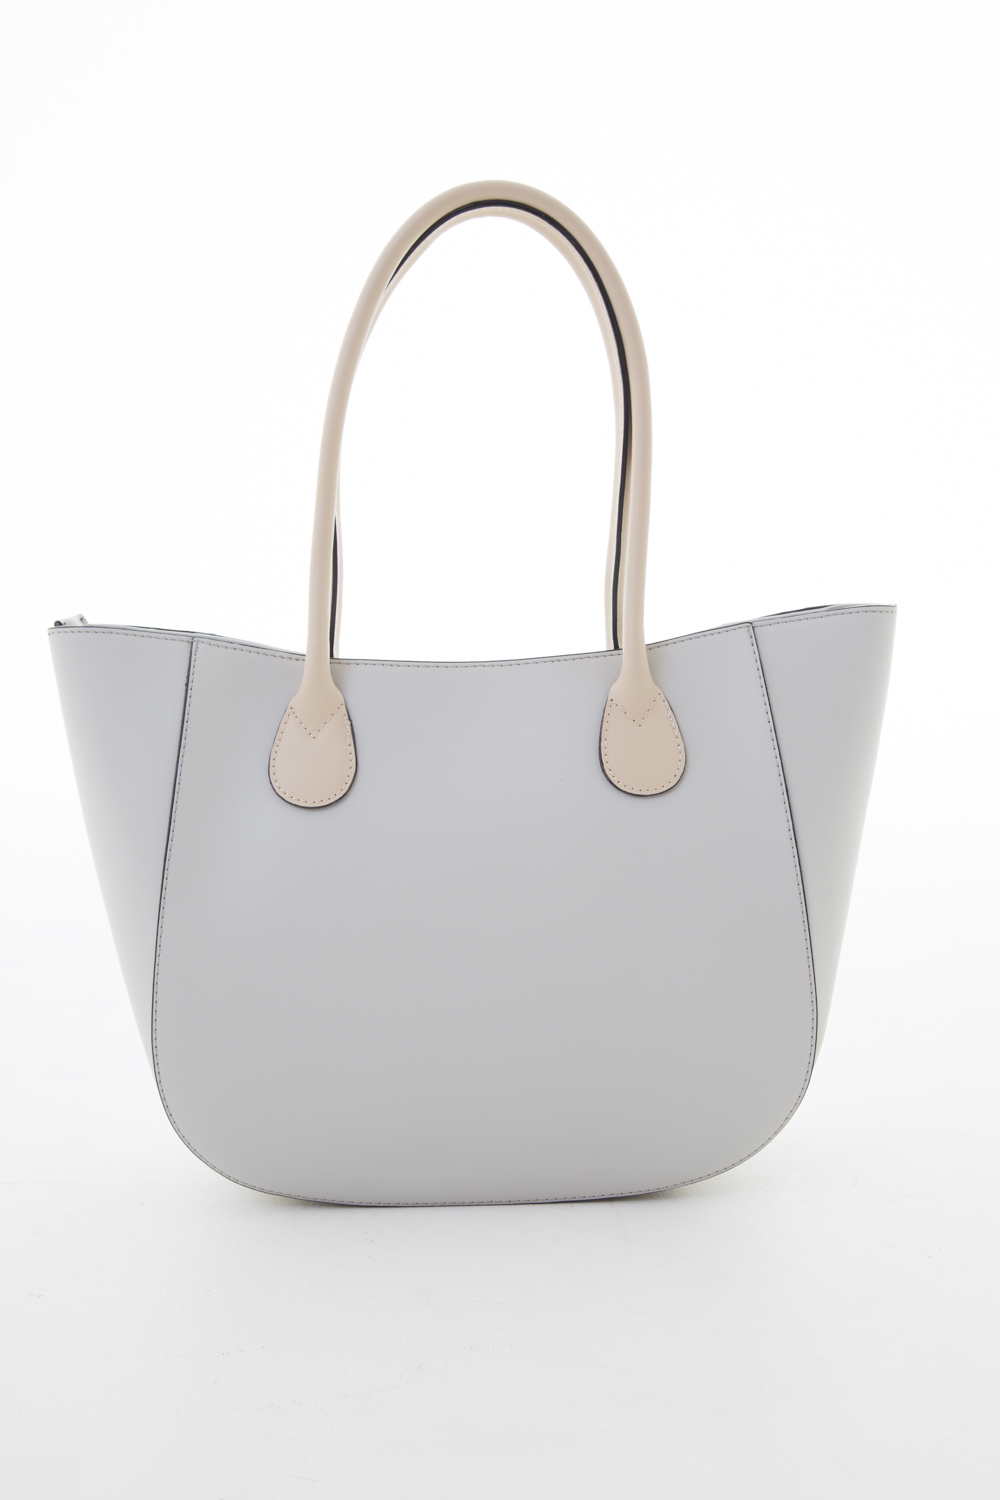 Newbury Shoulder Bag in Nude